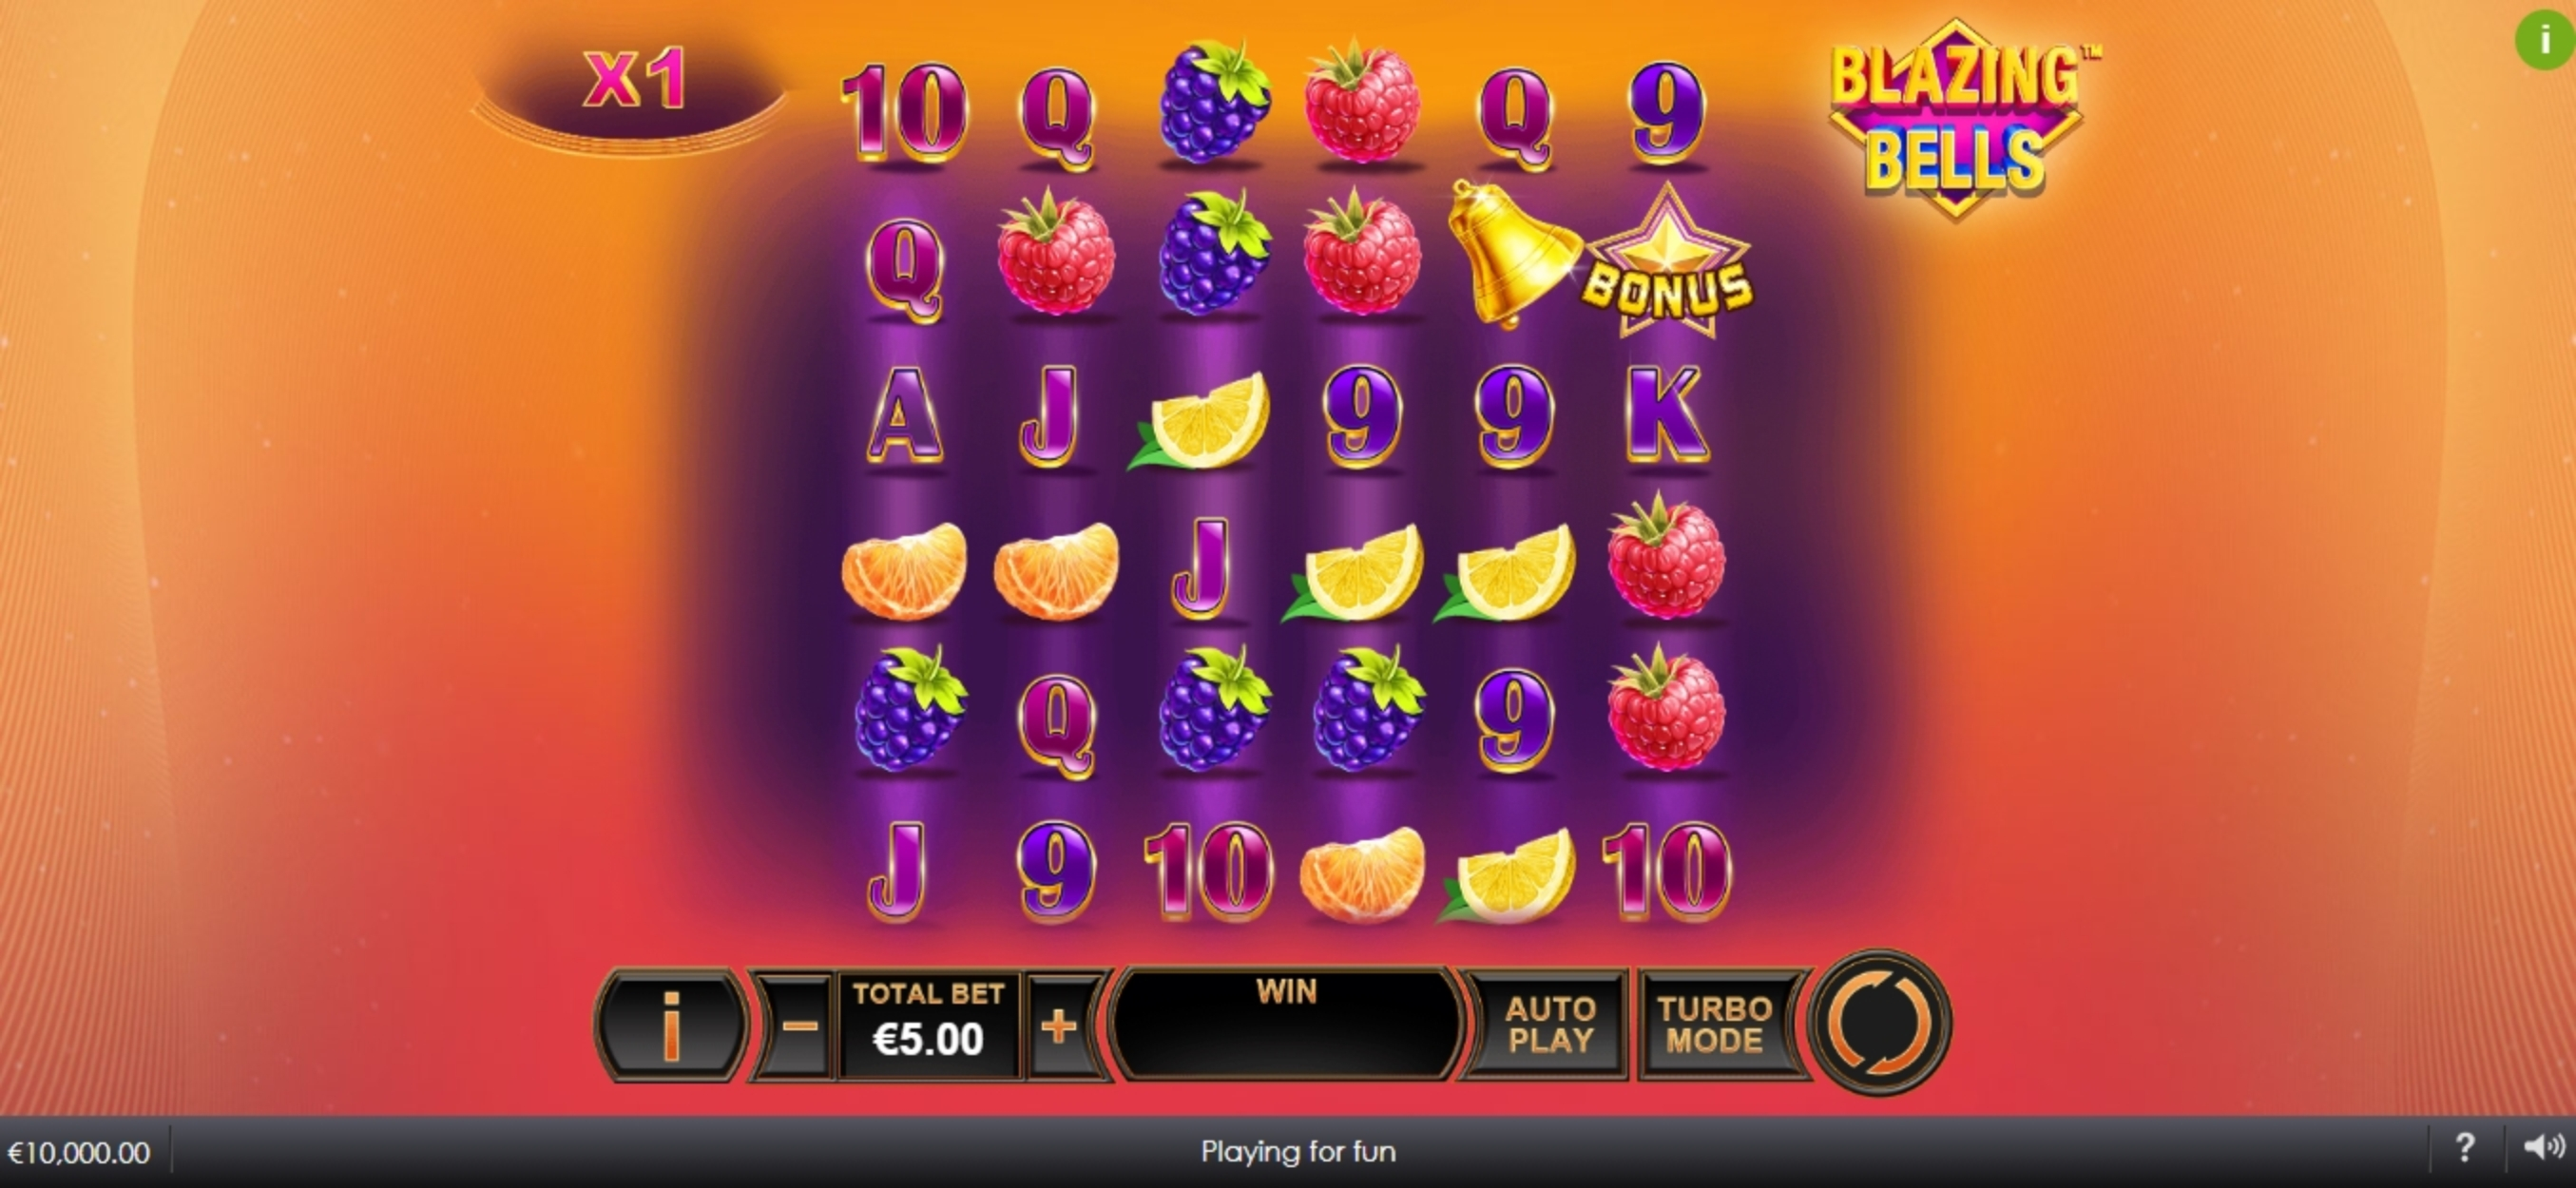 Reels in Blazing Bells Slot Game by Ash Gaming